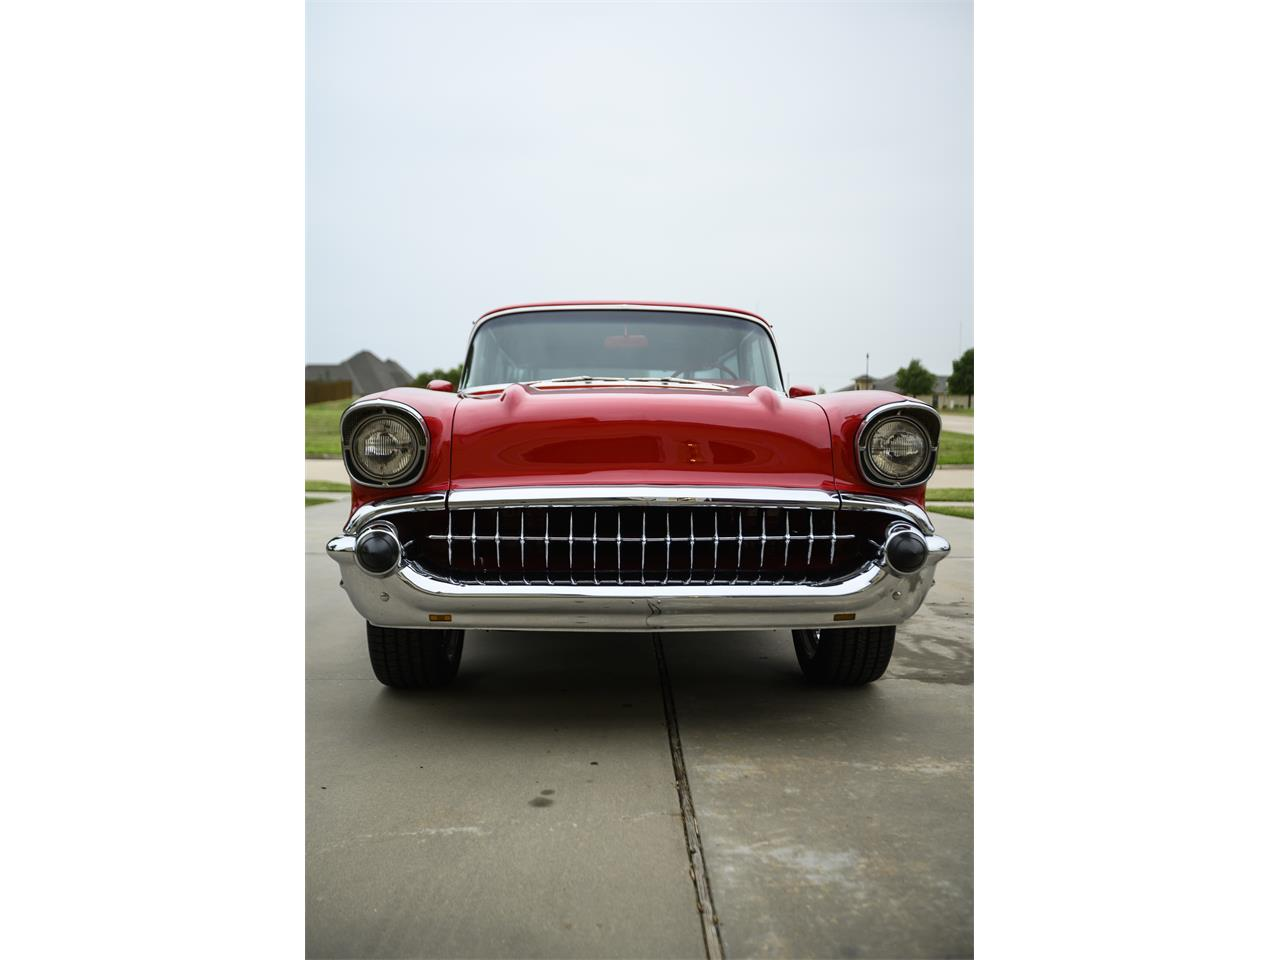 Large Picture of '57 Chevrolet Bel Air Nomad - $67,400.00 Offered by a Private Seller - PZTB